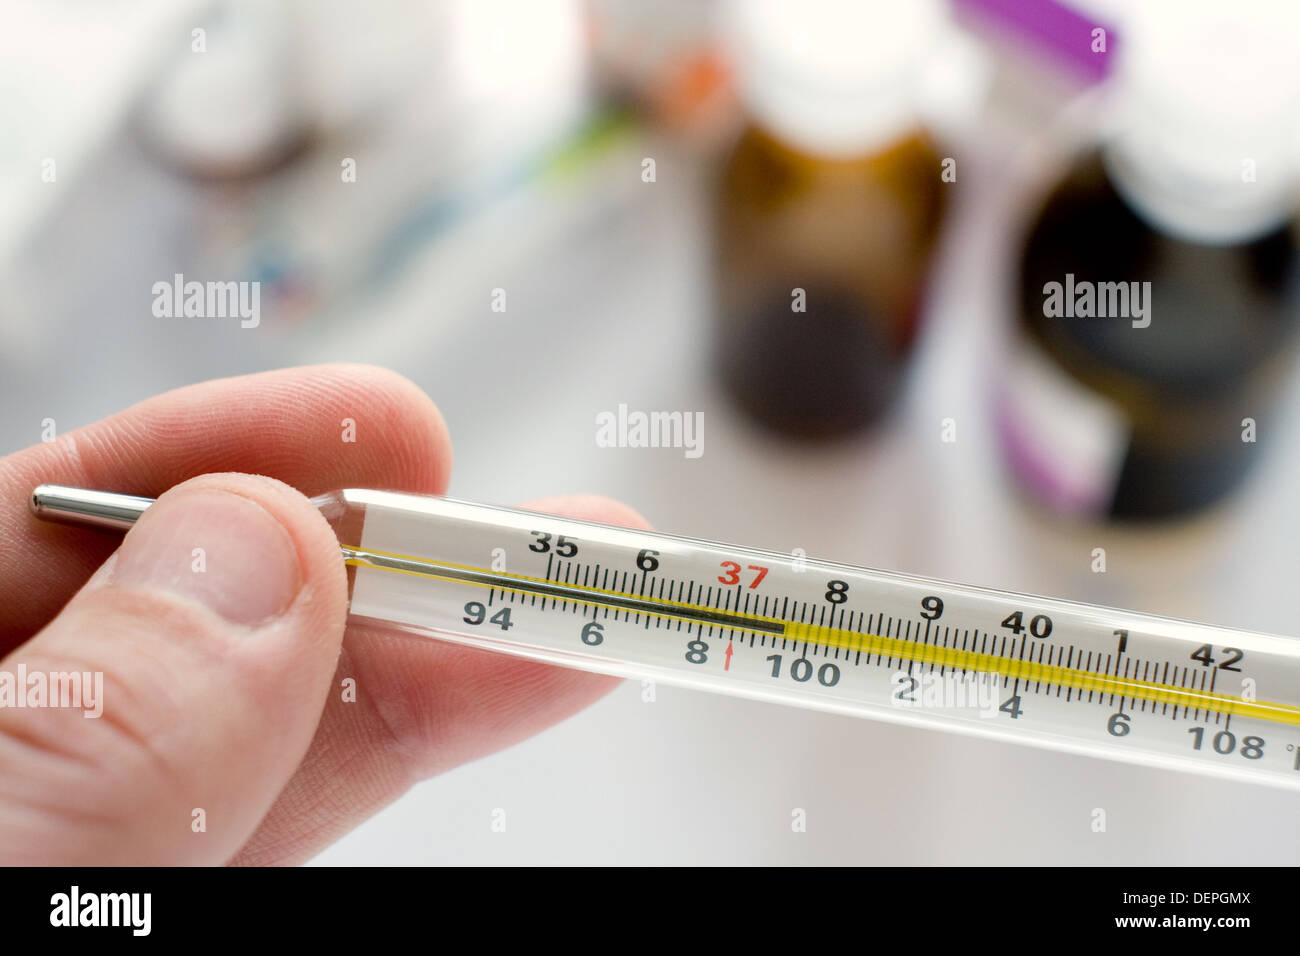 Doctor's hand holding thermometer indicating a high temperature - Stock Image